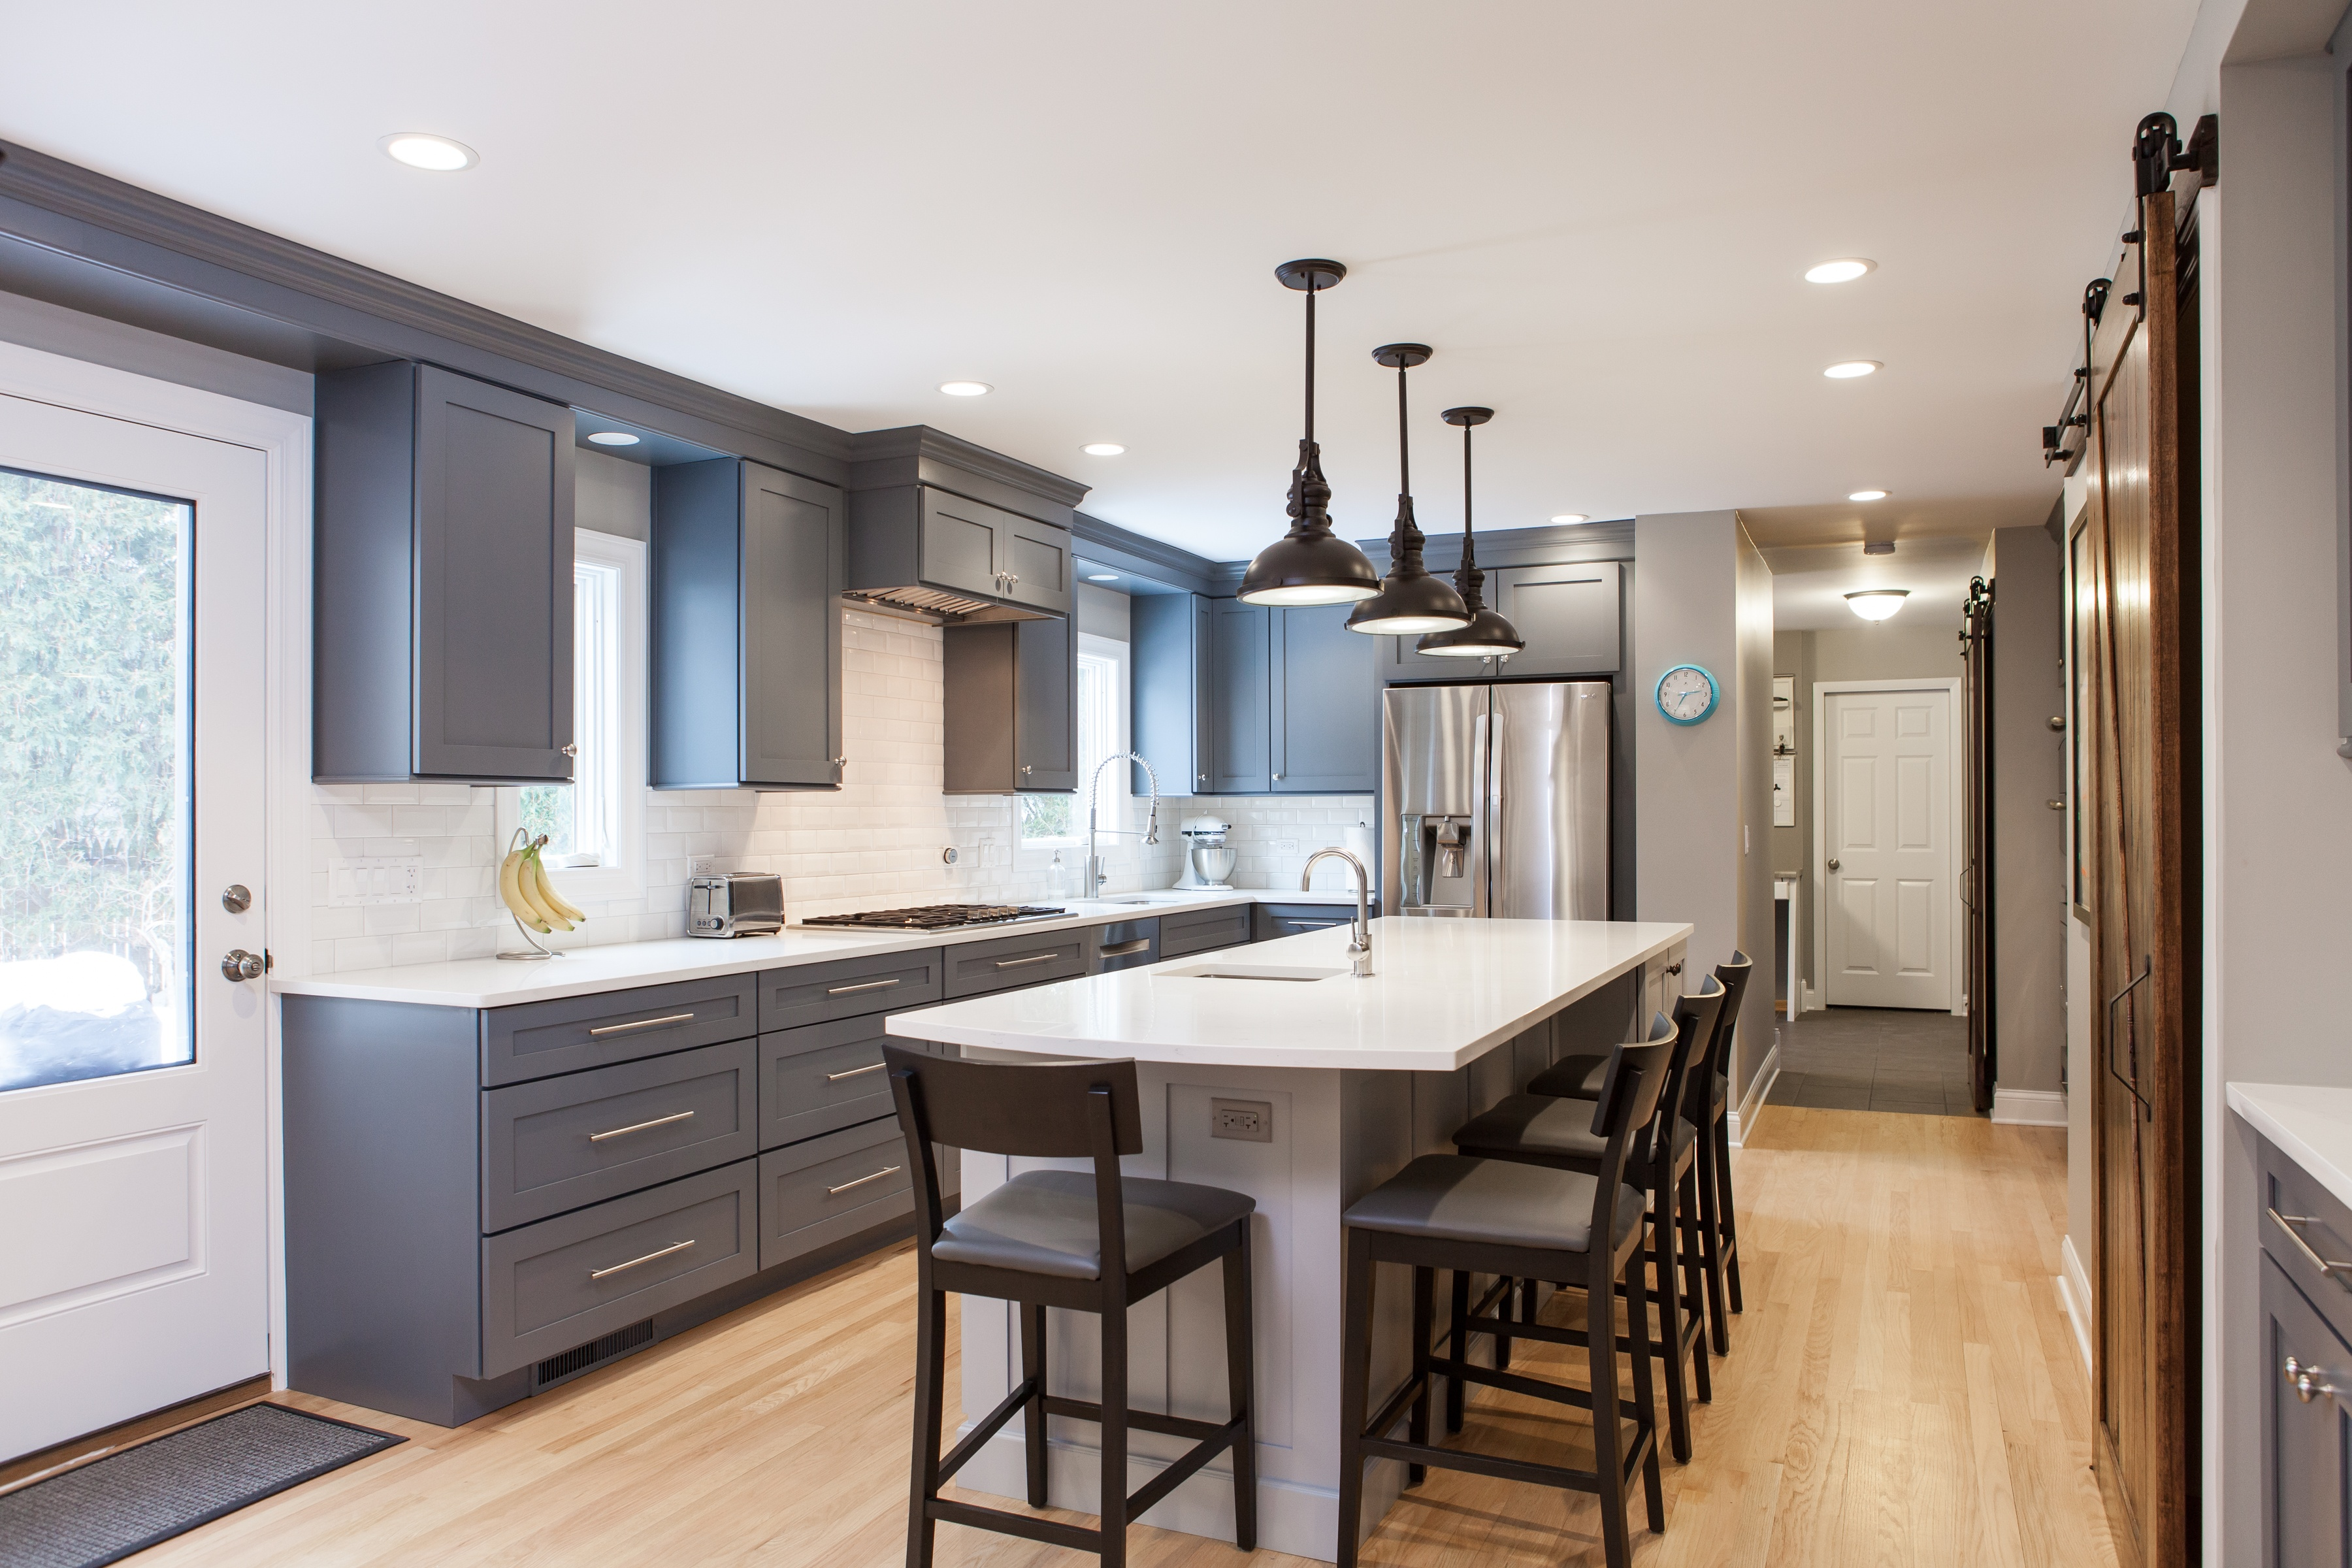 Ideal Kitchen Layout: What are Your Options and Which Should You Choose